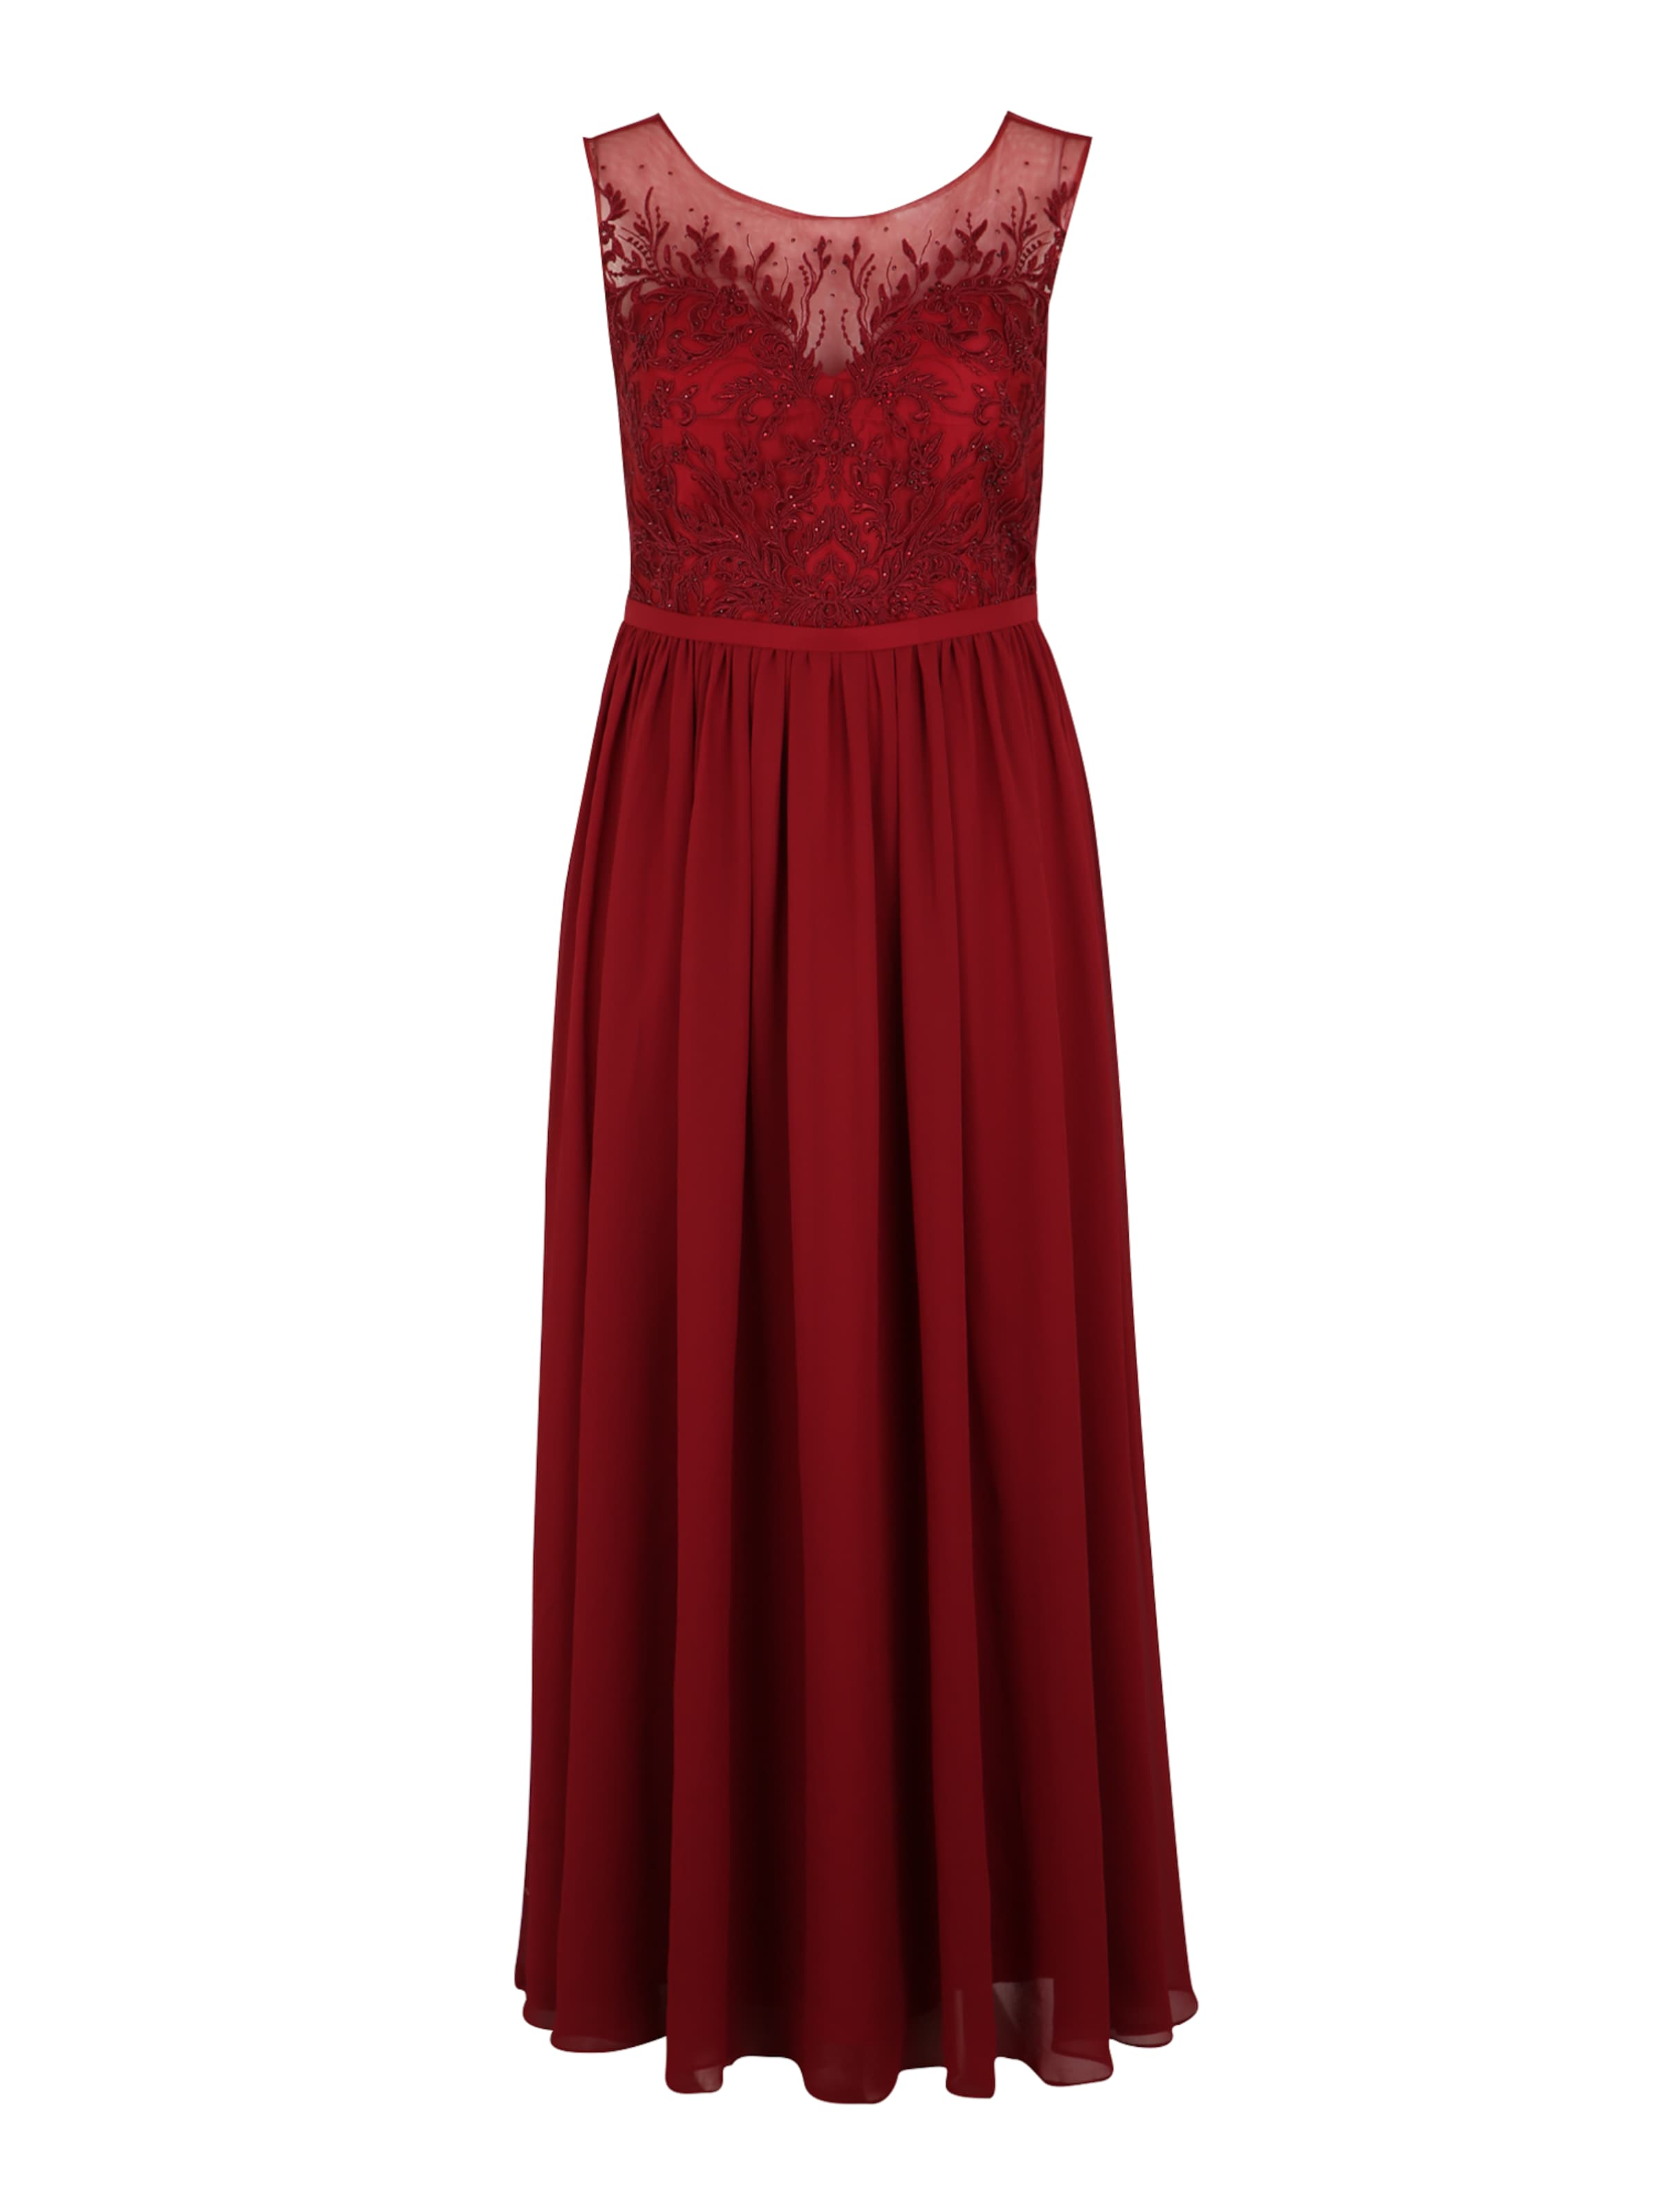 Mascara 'lace In Curves My Shoulder' Kleid Rot nvmN8w0O